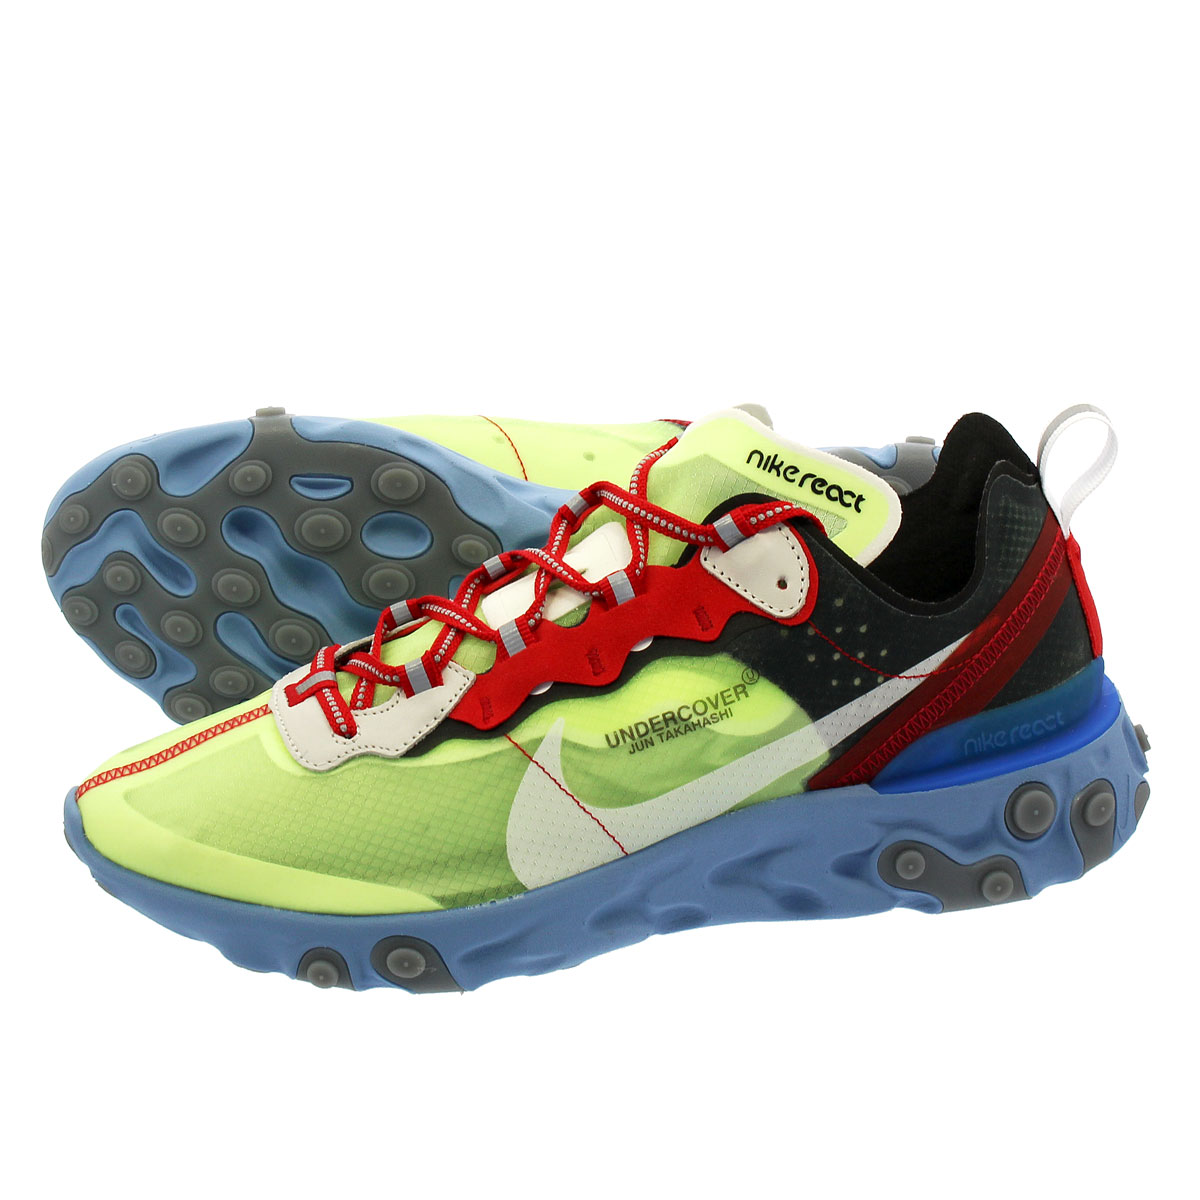 the latest 6df5d c8881 NIKE X UNDERCOVER REACT ELEMENT 87 Nike under cover re-act element 87 VOLT UNIVERSITY  RED BLACK WHITE SUMMIT WHITE bq2718-700